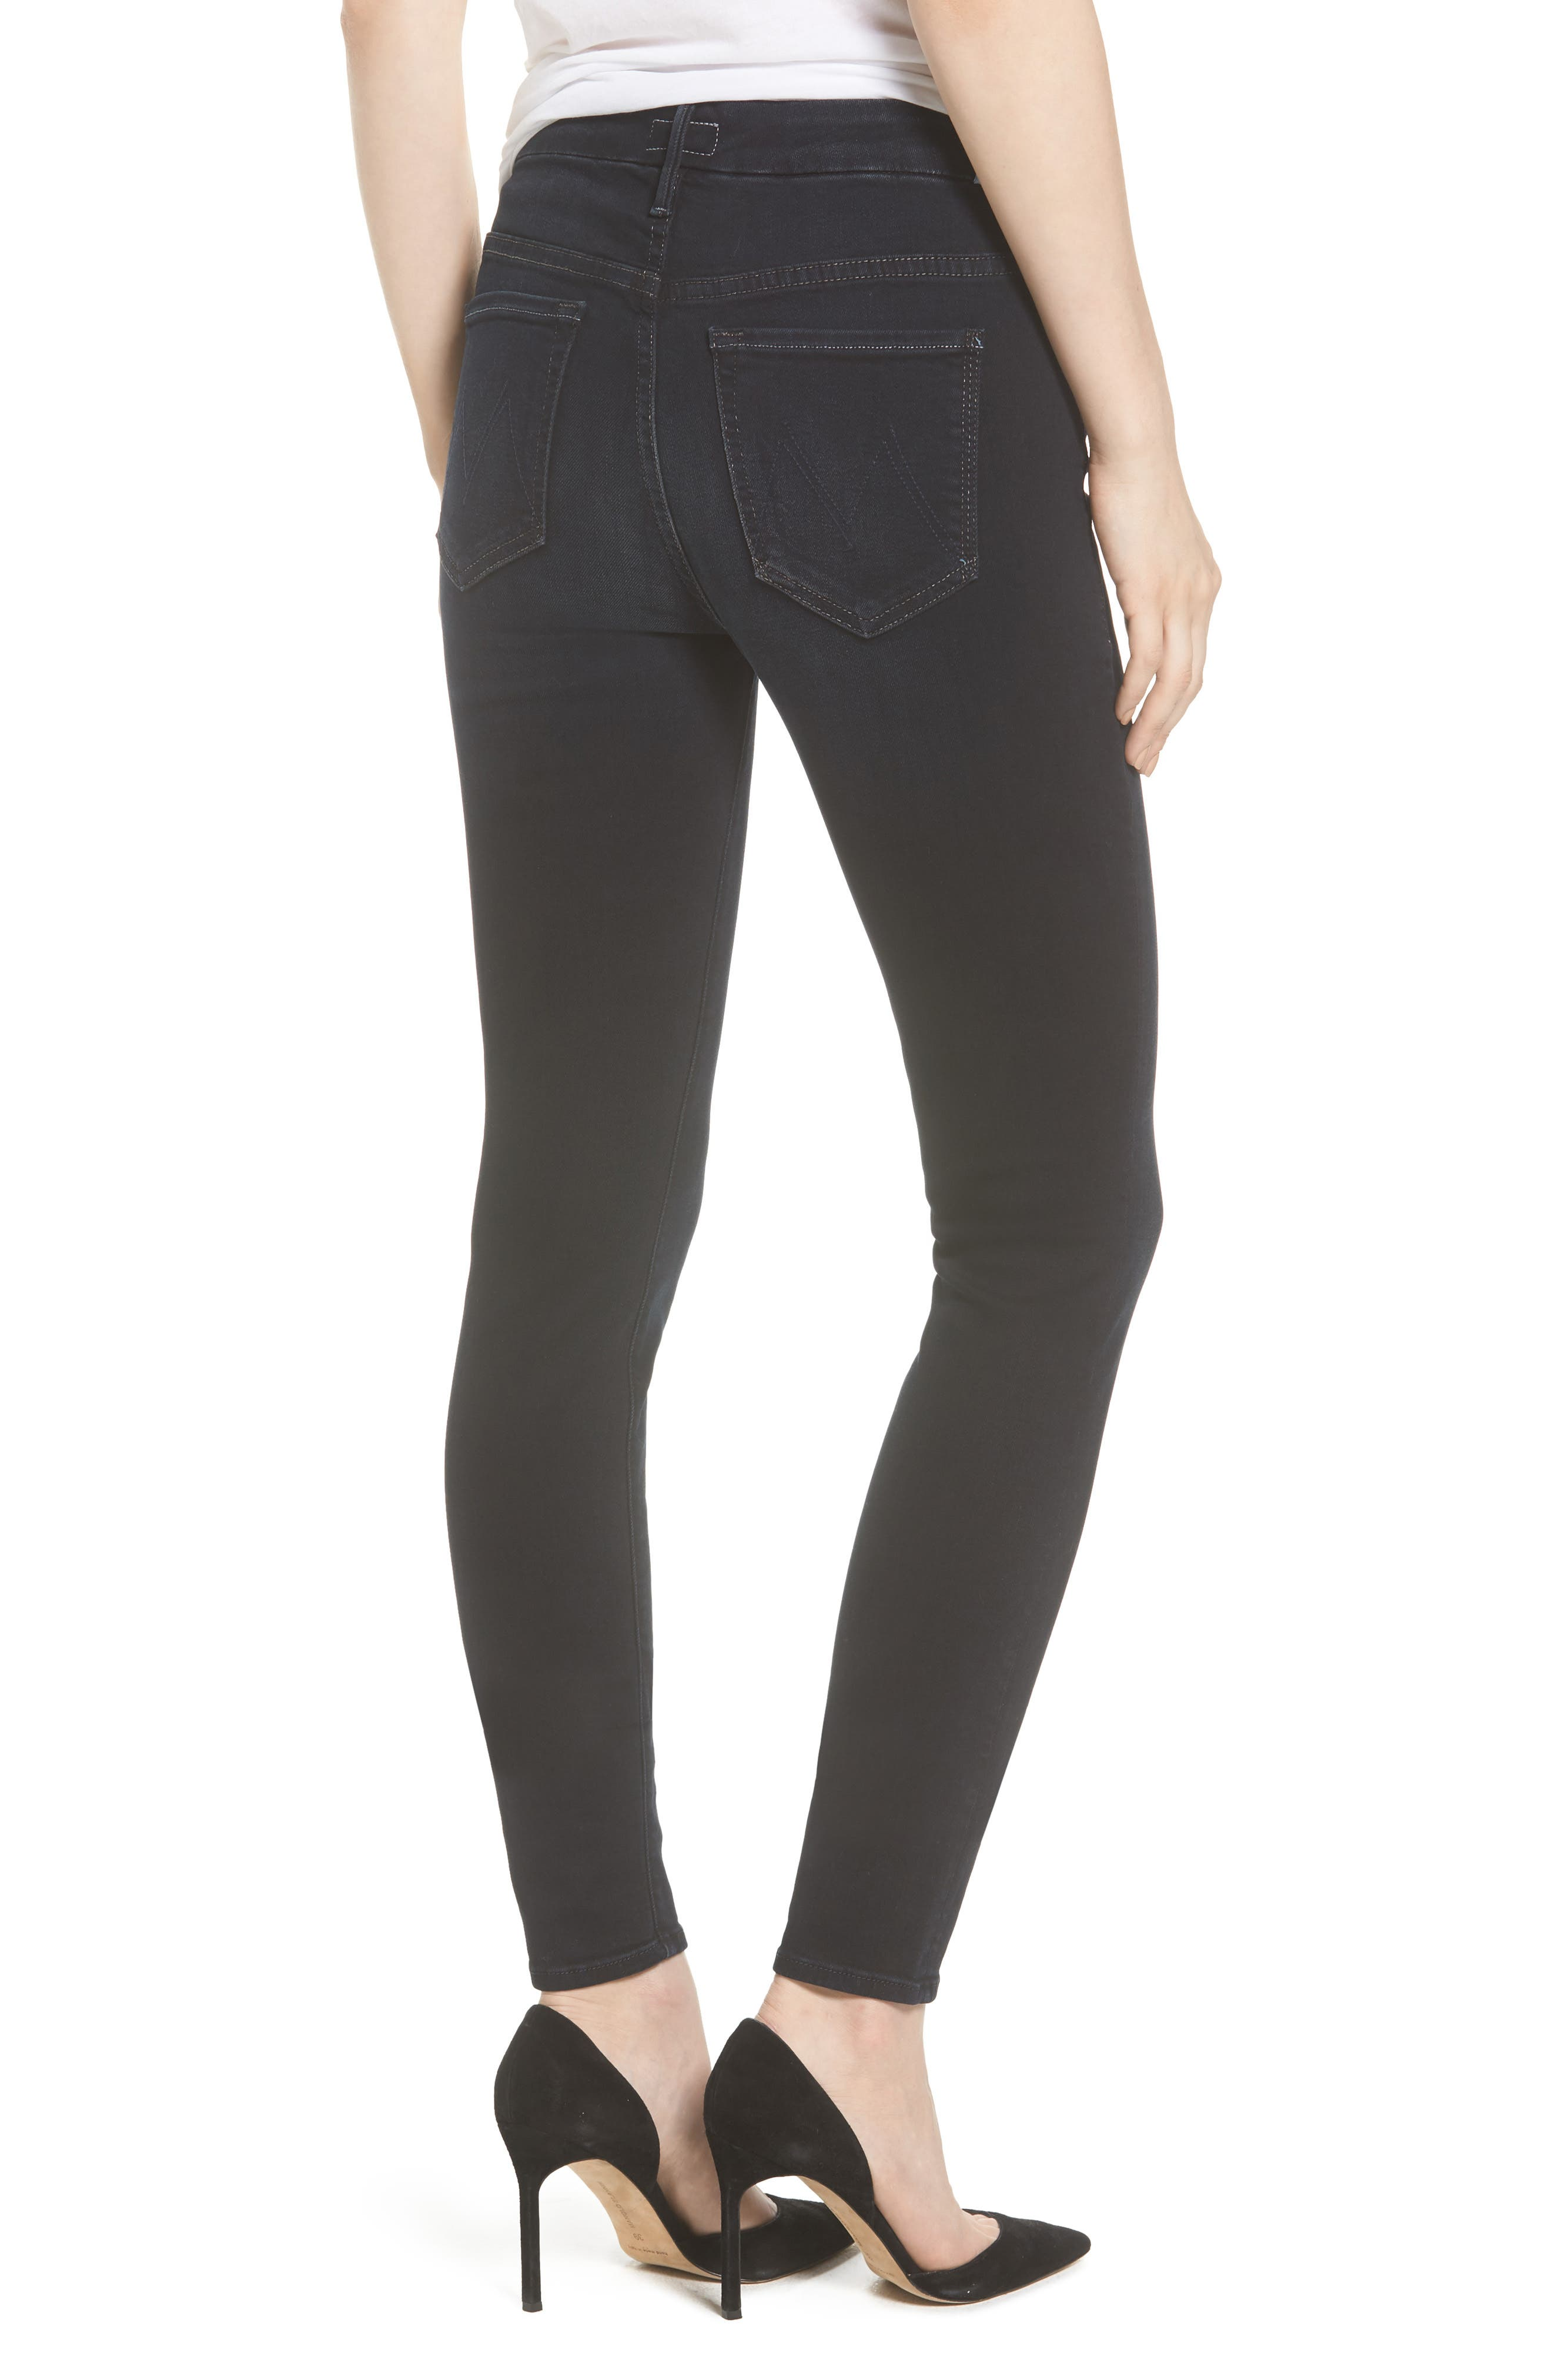 MOTHER, 'The Looker' High Rise Skinny Jeans, Alternate thumbnail 2, color, COFFEE TEA OR ME